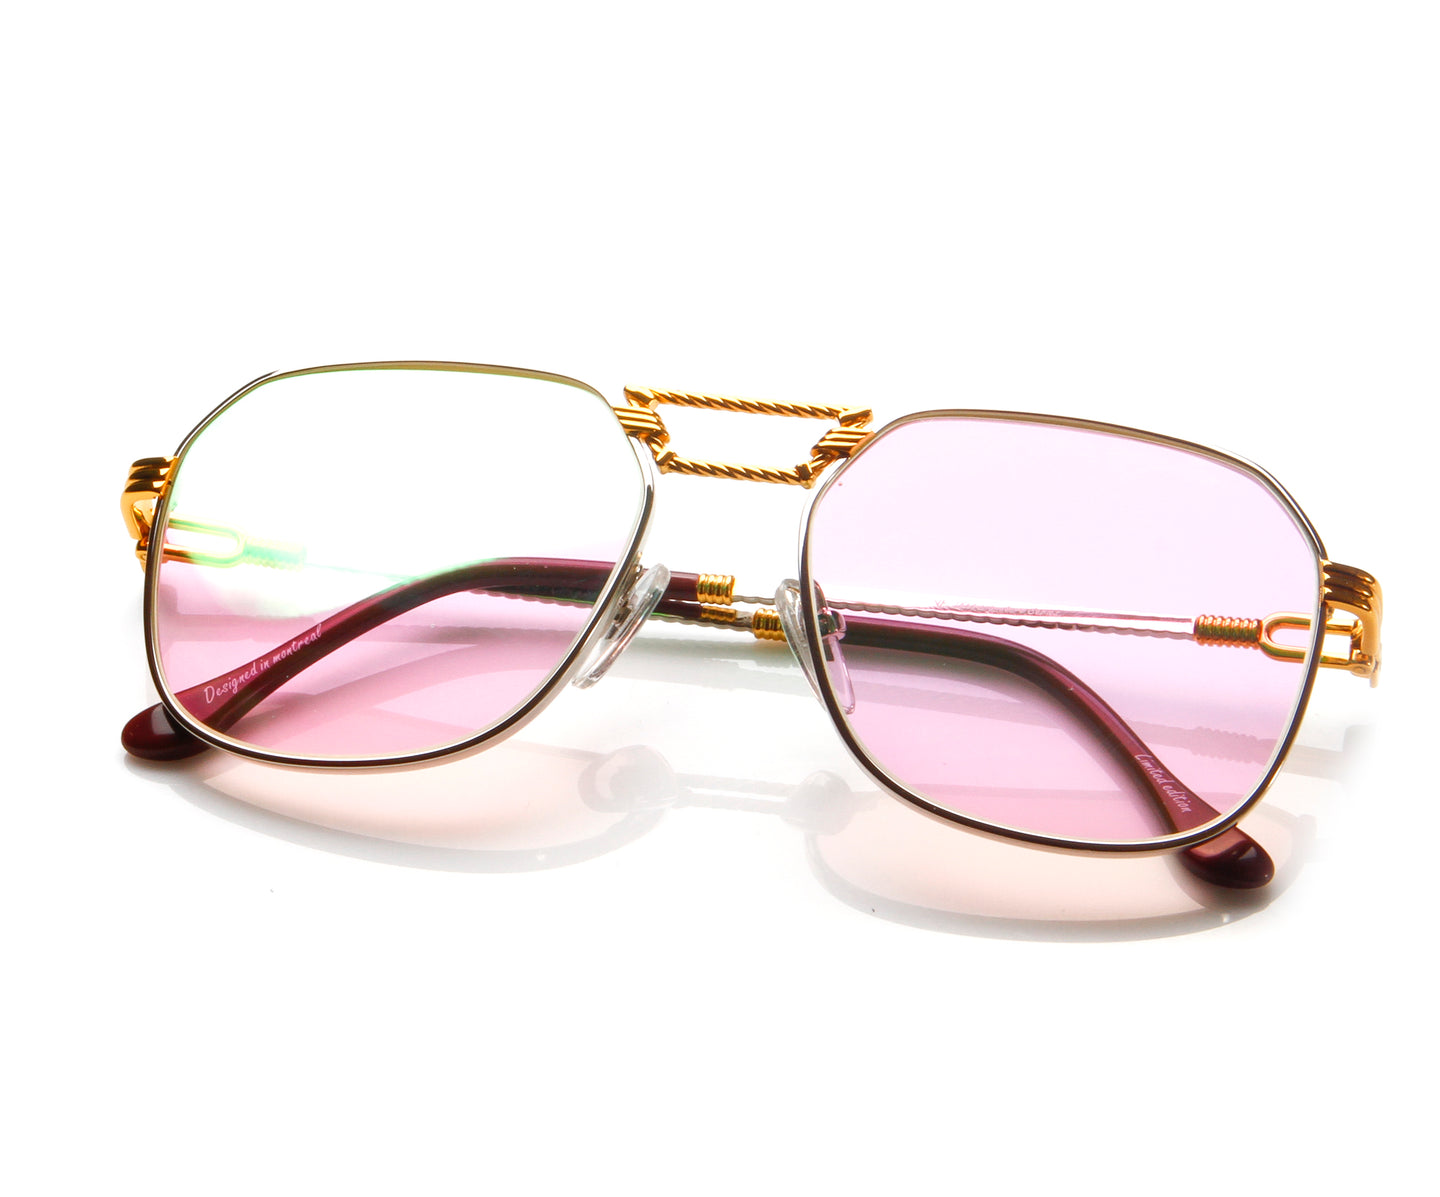 CEO Masterpiece 24KT Two-Tone, VF Masterpiece , glasses frames, eyeglasses online, eyeglass frames, mens glasses, womens glasses, buy glasses online, designer eyeglasses, vintage sunglasses, retro sunglasses, vintage glasses, sunglass, eyeglass, glasses, lens, vintage frames company, vf